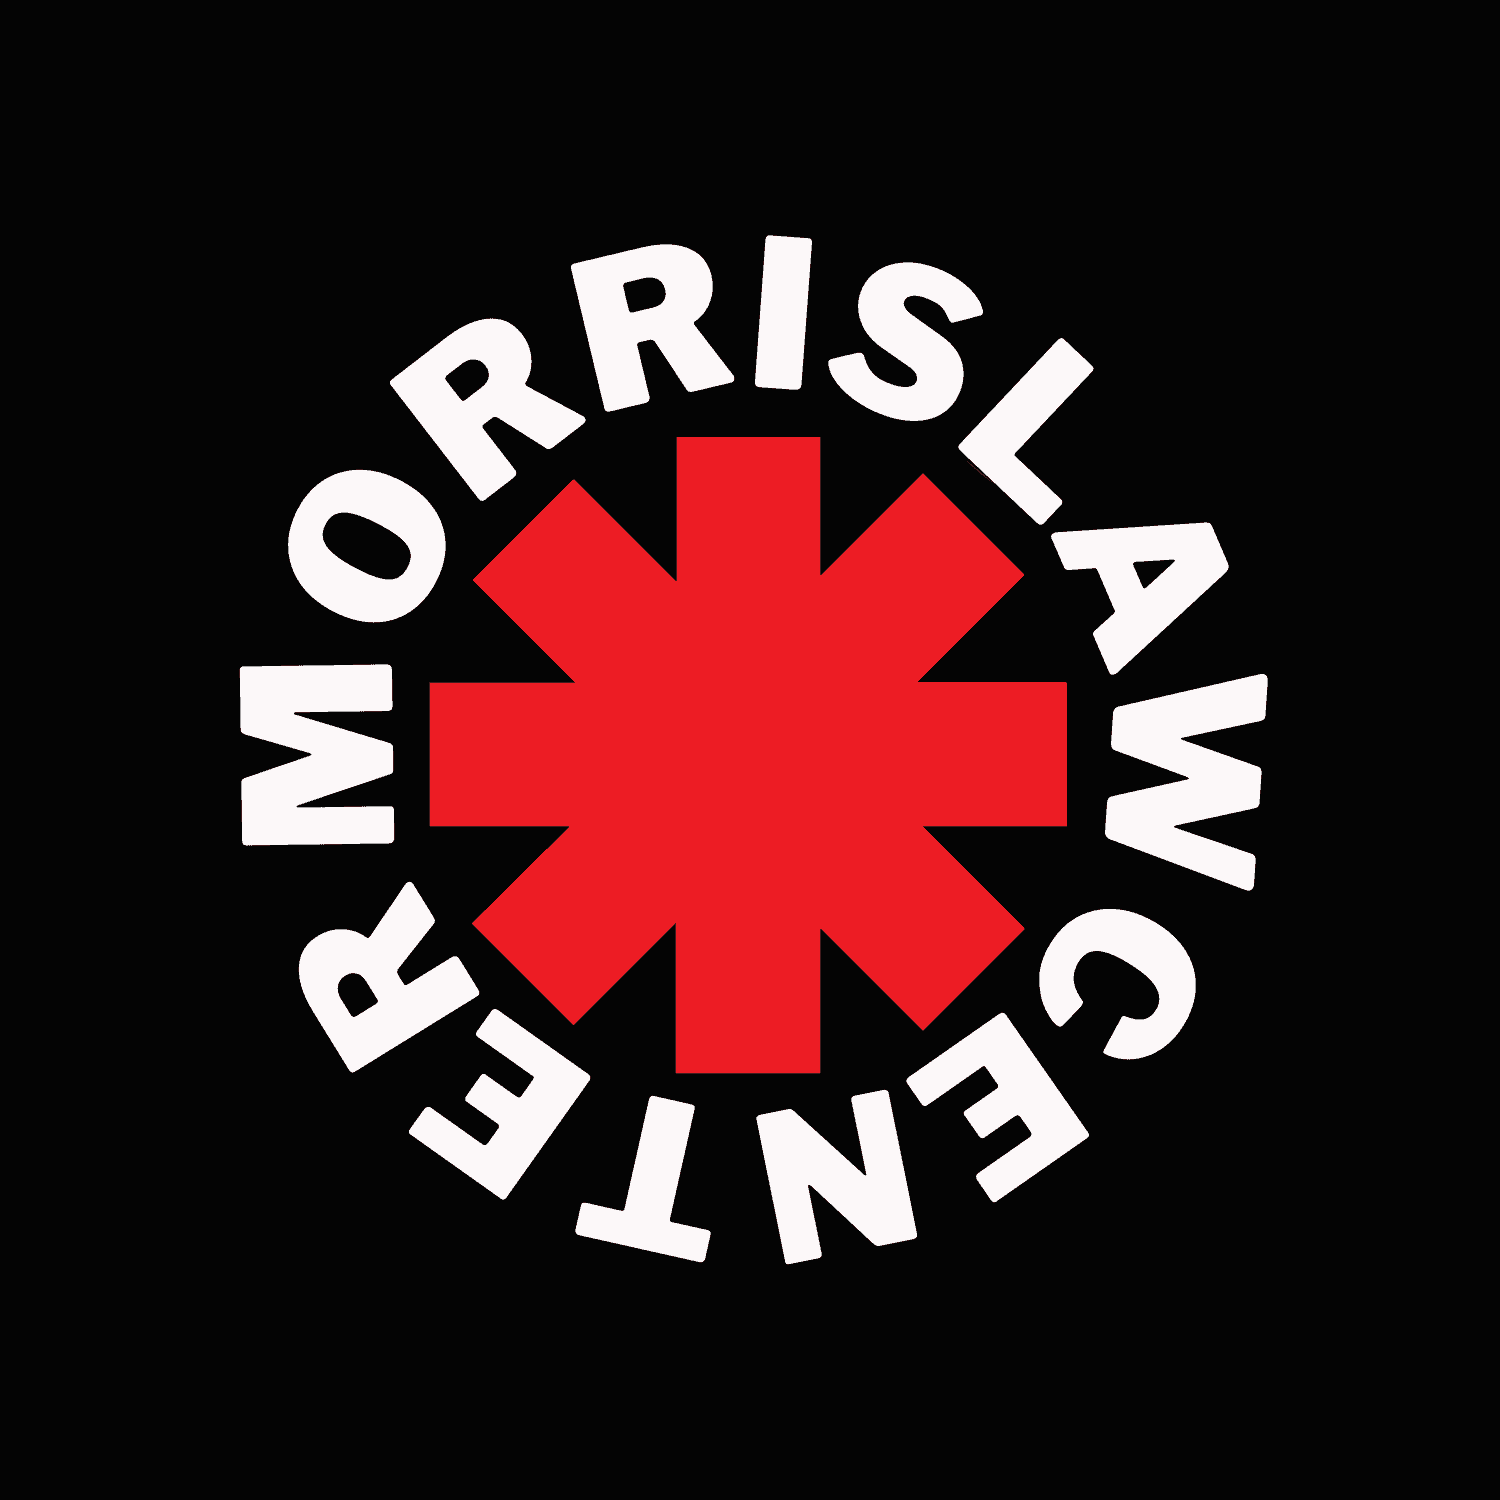 Are we in Trouble For Copying The Red Hot Chili Peppers Logo?